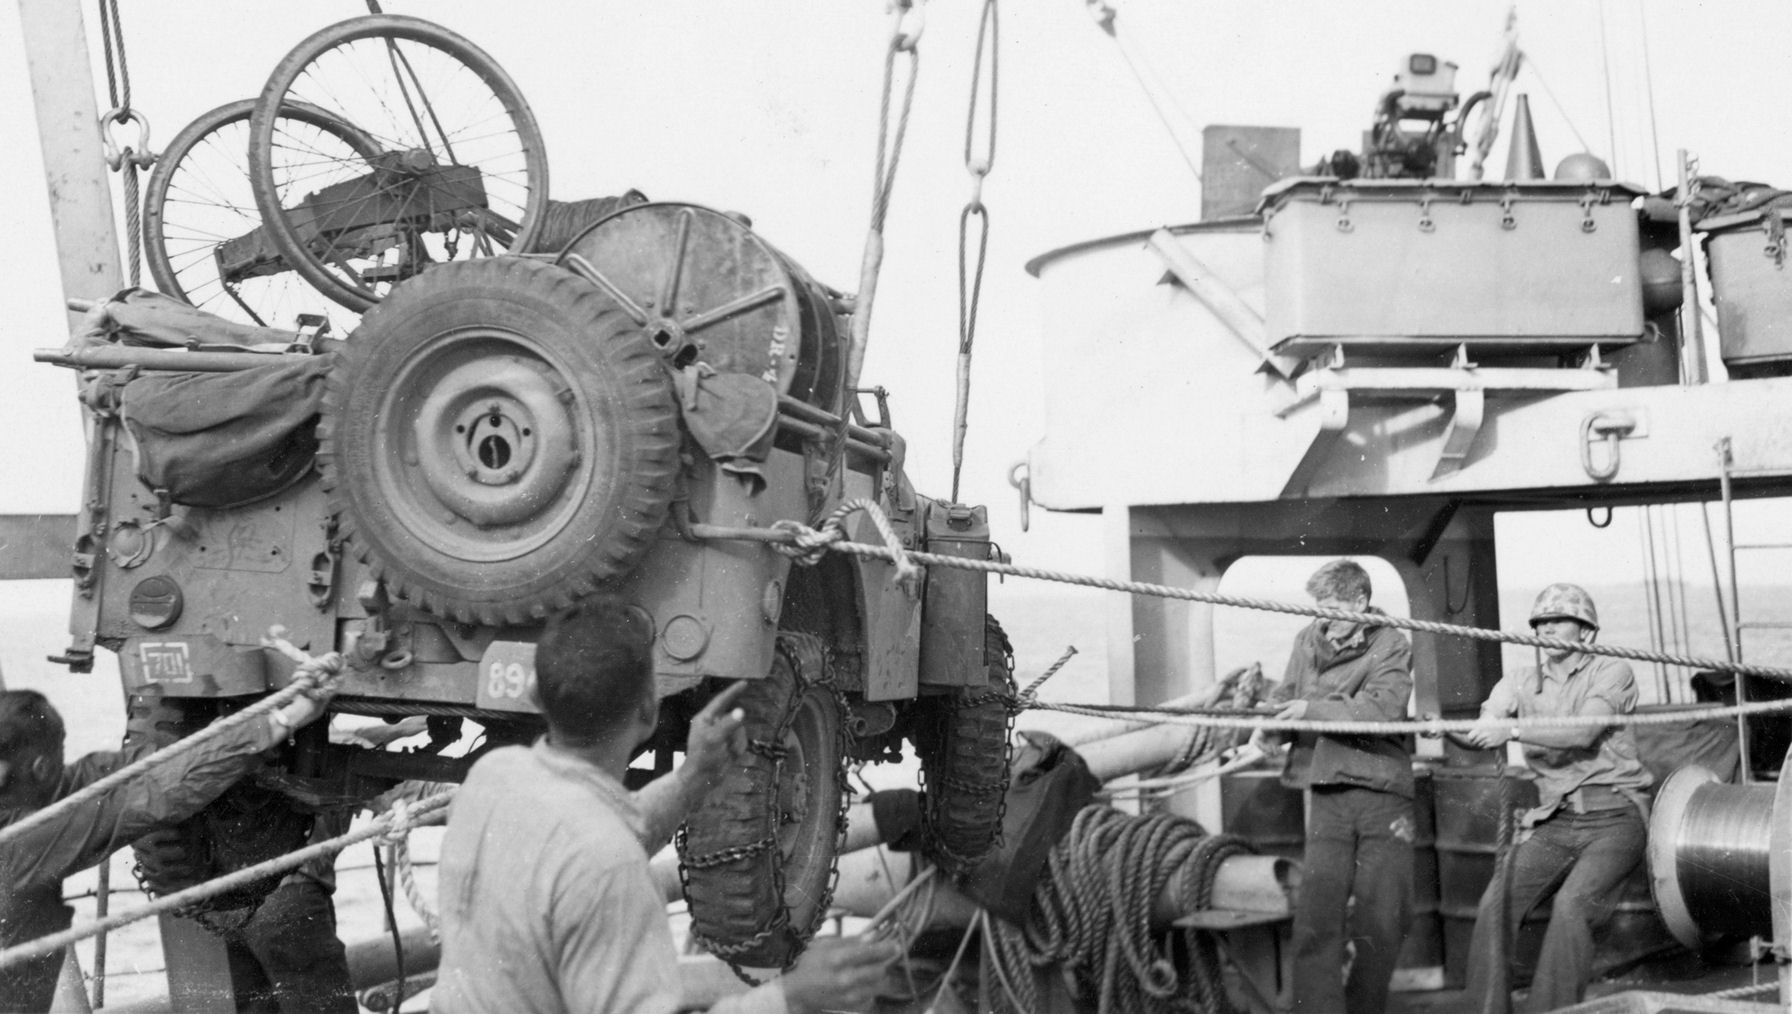 Jeep_From_USS_RUTLAND_to_LCVP_Feb-20th_1945.jpg